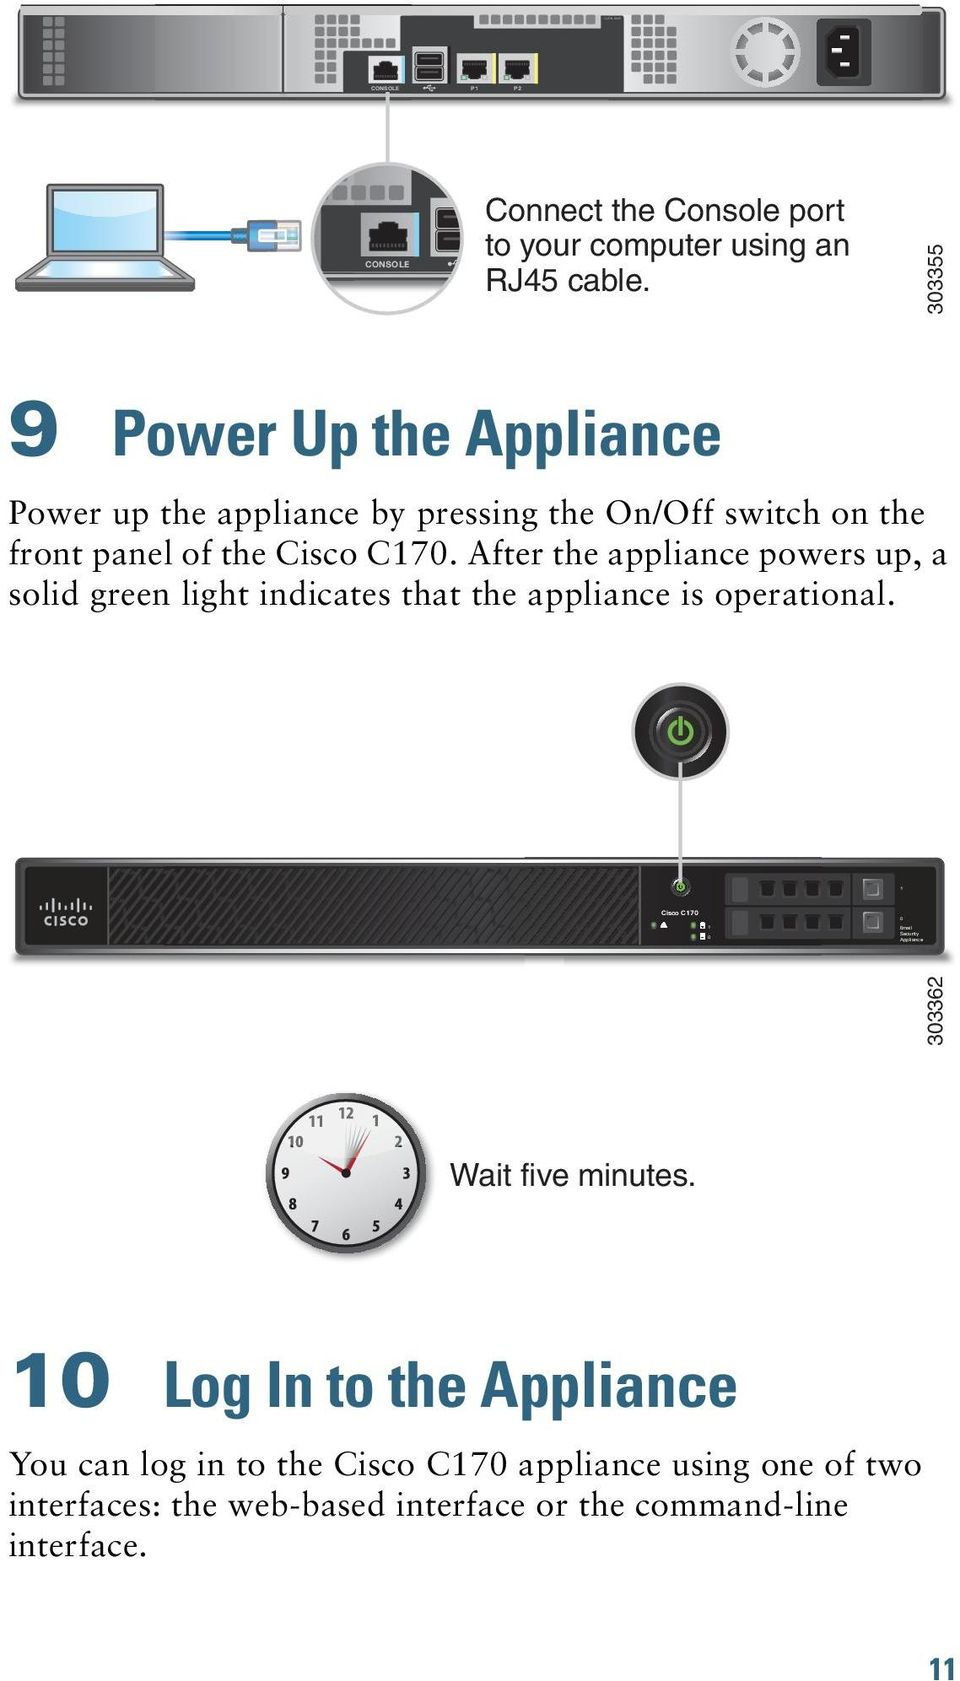 After the appliance powers up, a solid green light indicates that the appliance is operational. Cisco C170 303362 Wait five minutes.